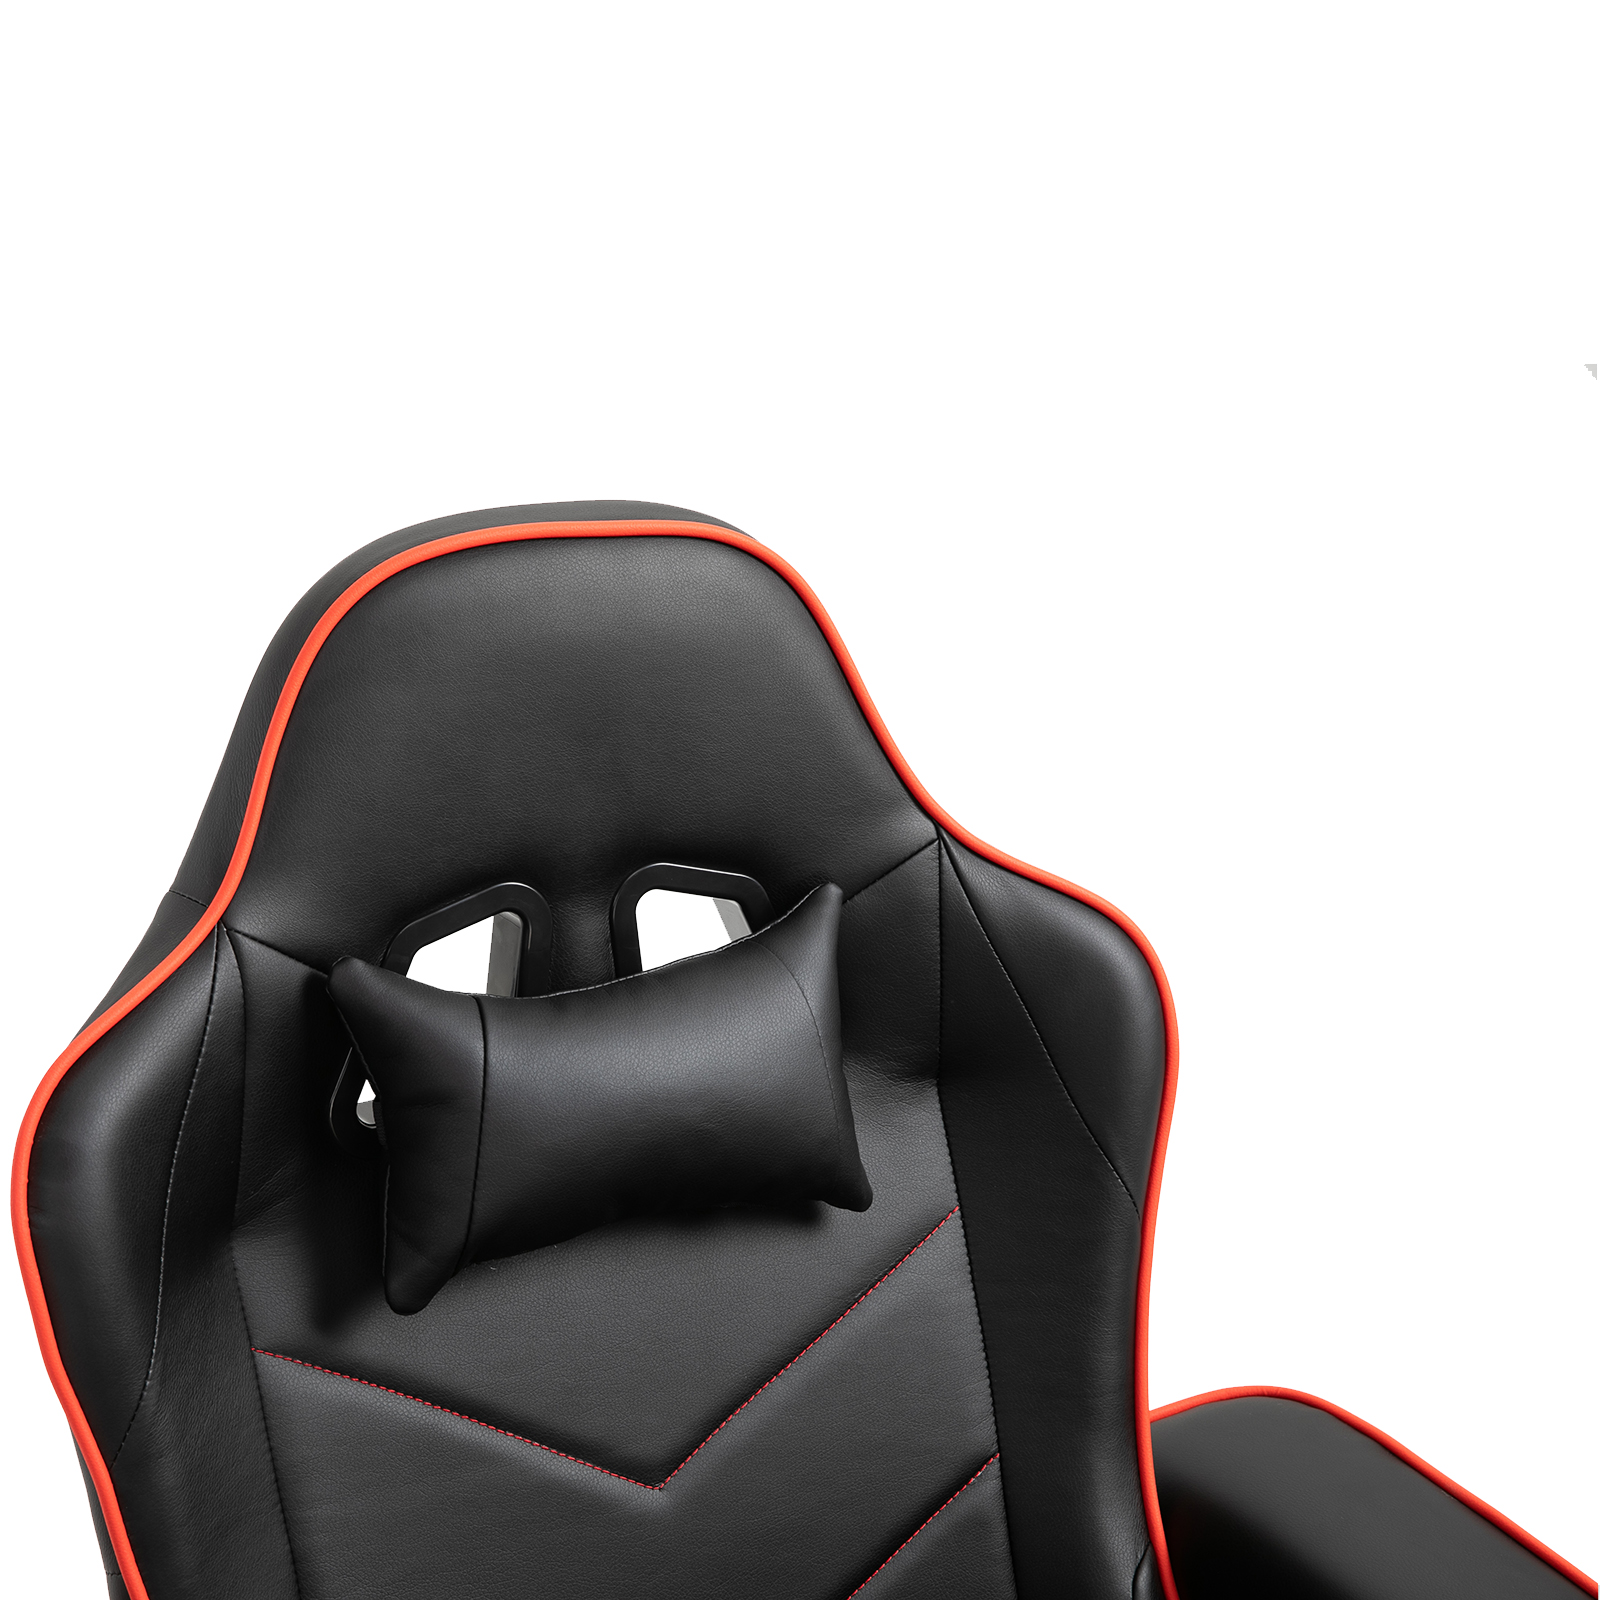 Vinsetto Home Comfort Office Video Game Swivel Chair w ...